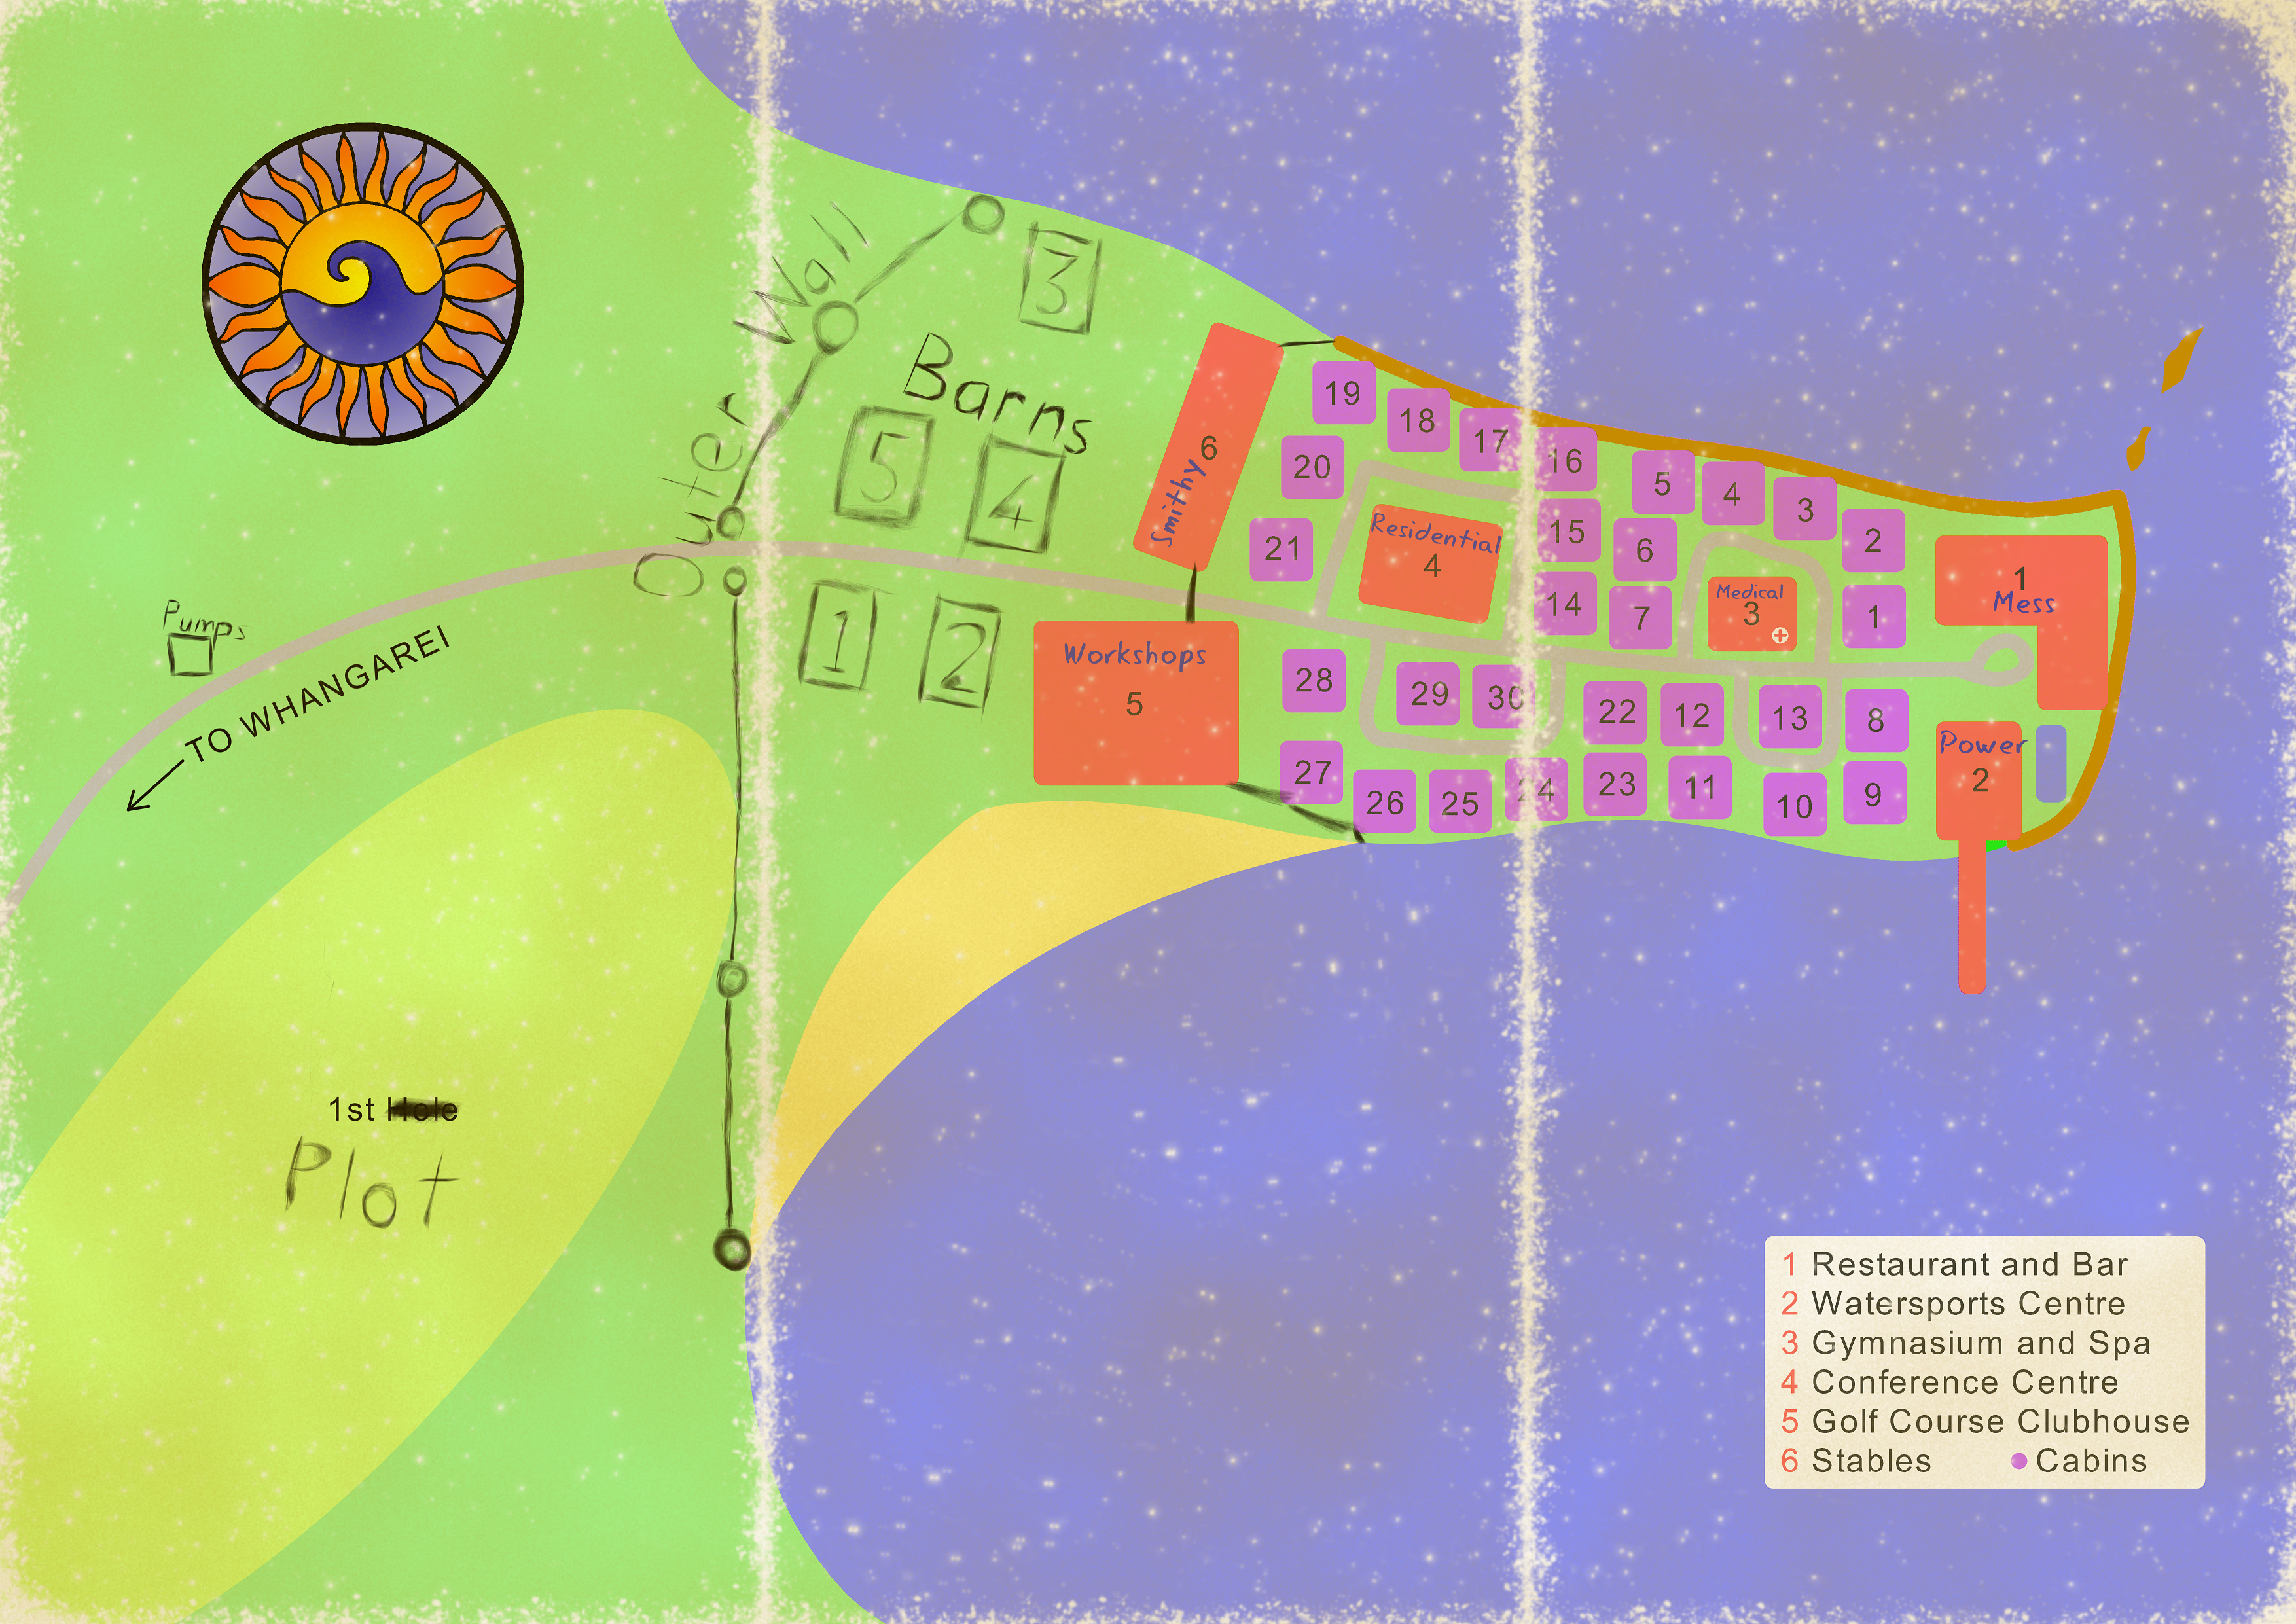 A brochure map of a beach resort on a peninsula, with a jetty, stables, and a golf course. Handwritten notes outline new buildings and defences and new purposes for existing buildings.